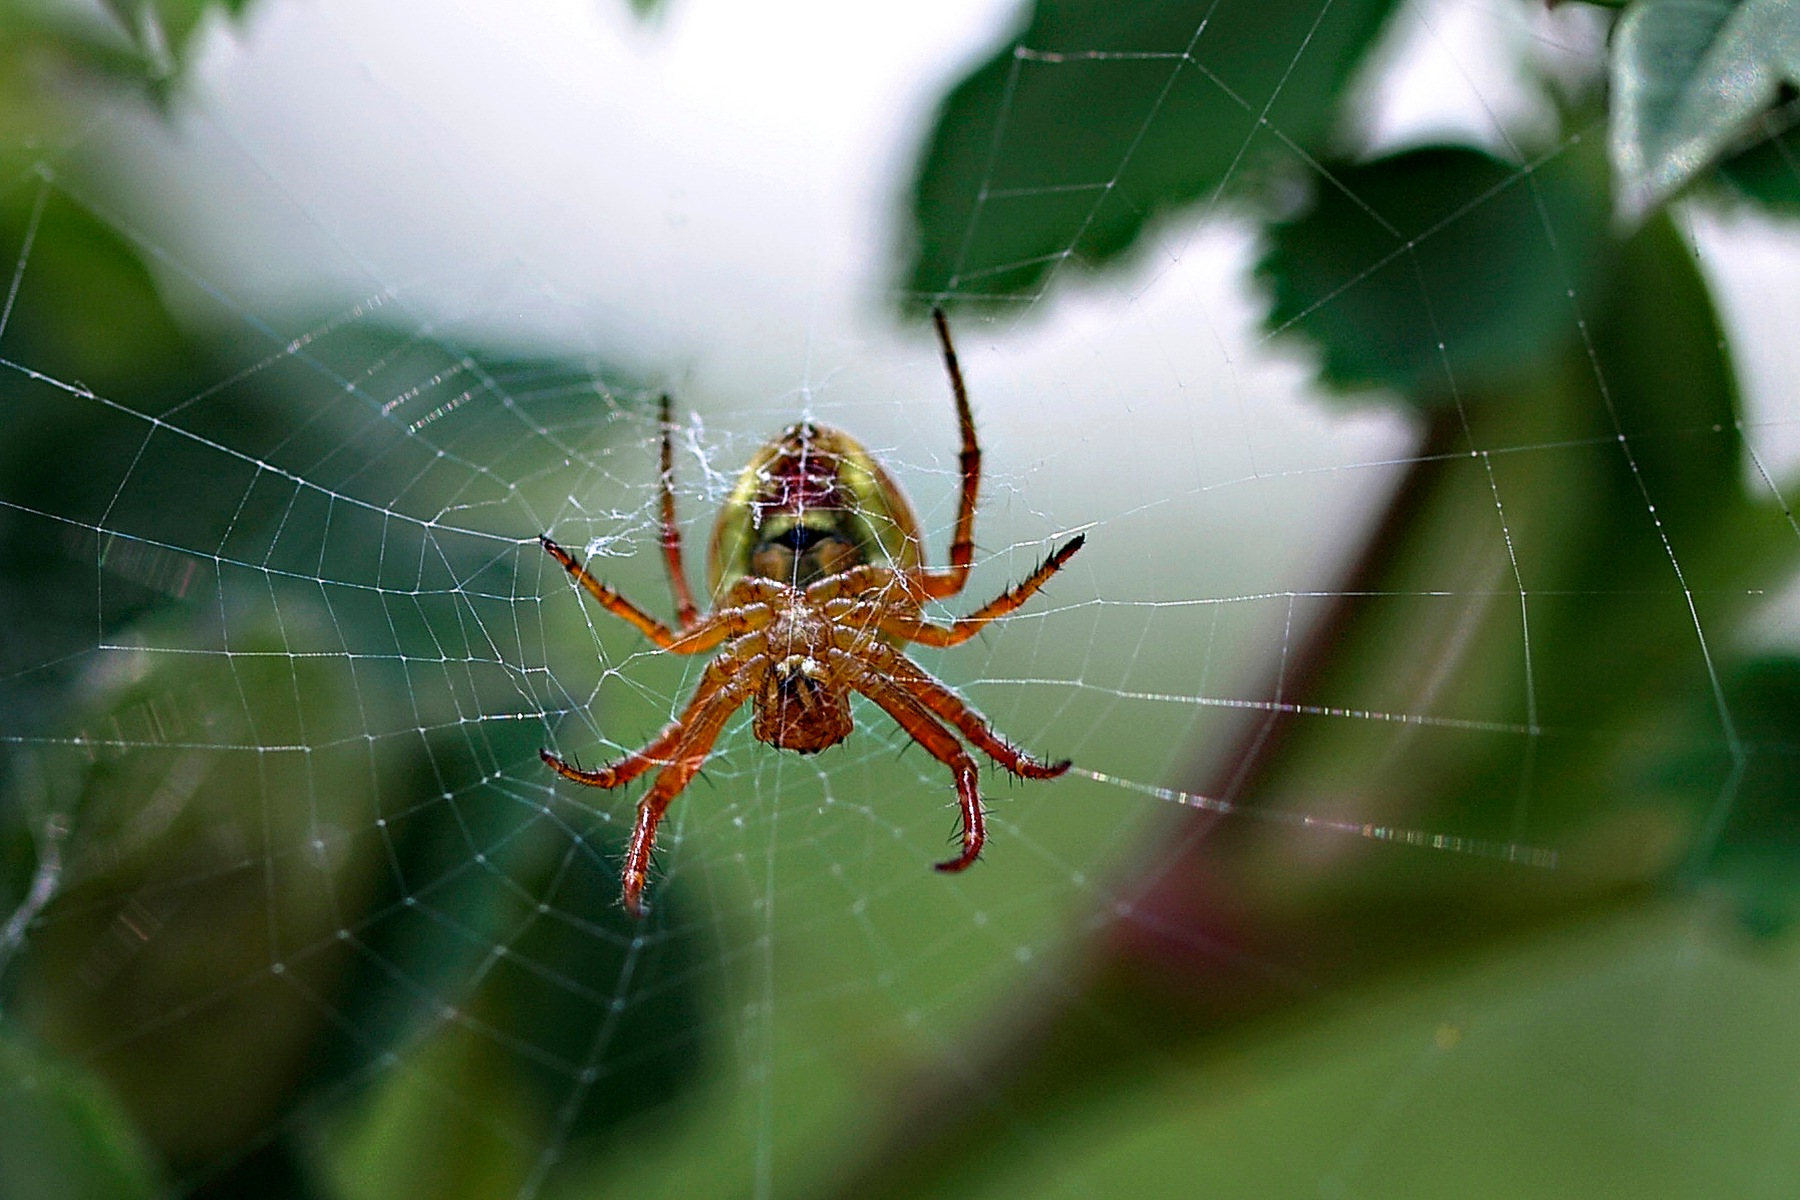 Spider by Brigitte Werner